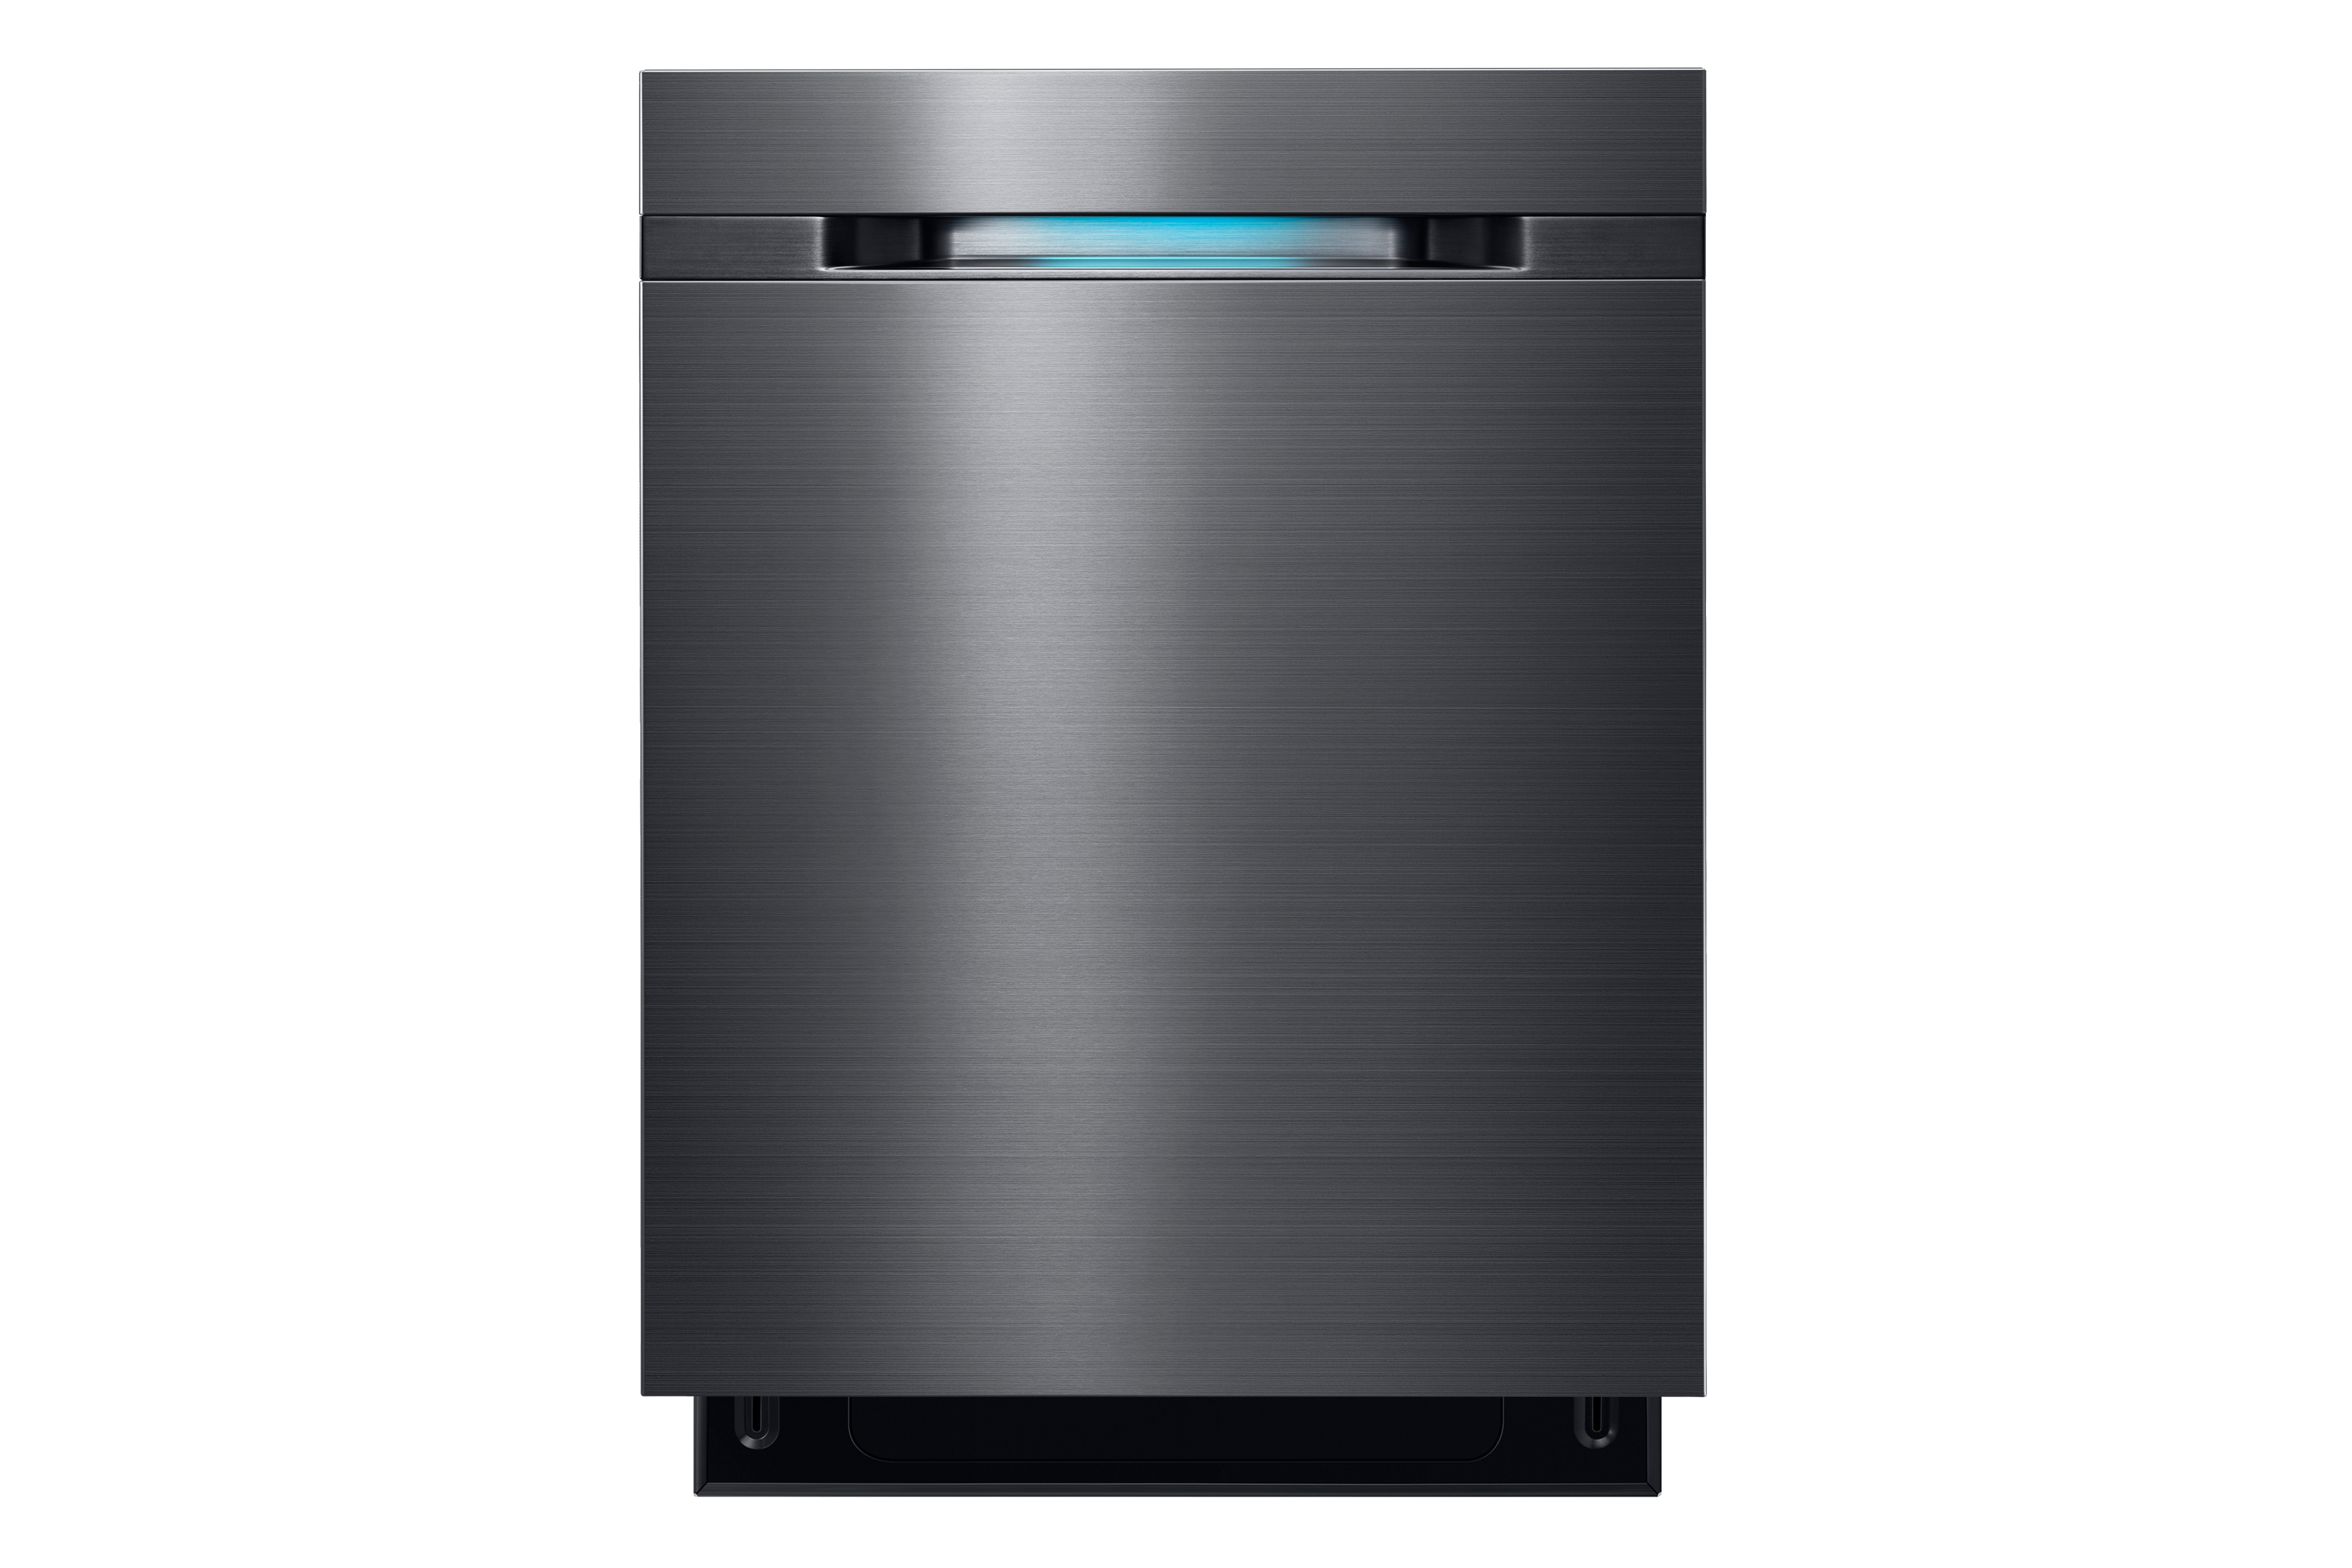 DW80J7550UG Dishwasher with WaterWall™